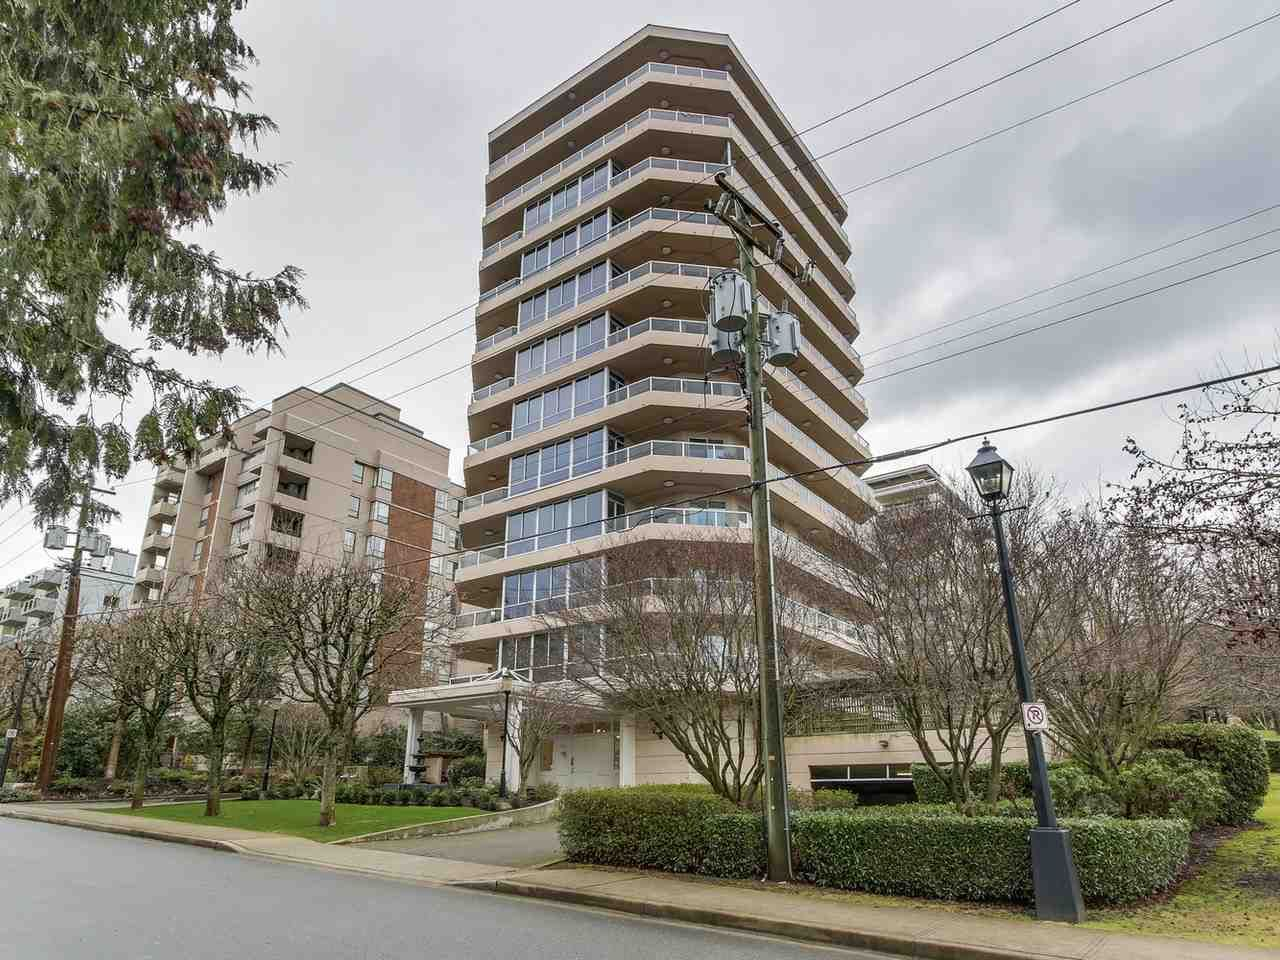 """Main Photo: 2 1717 DUCHESS Avenue in West Vancouver: Ambleside Condo for sale in """"The Regent"""" : MLS®# R2138908"""